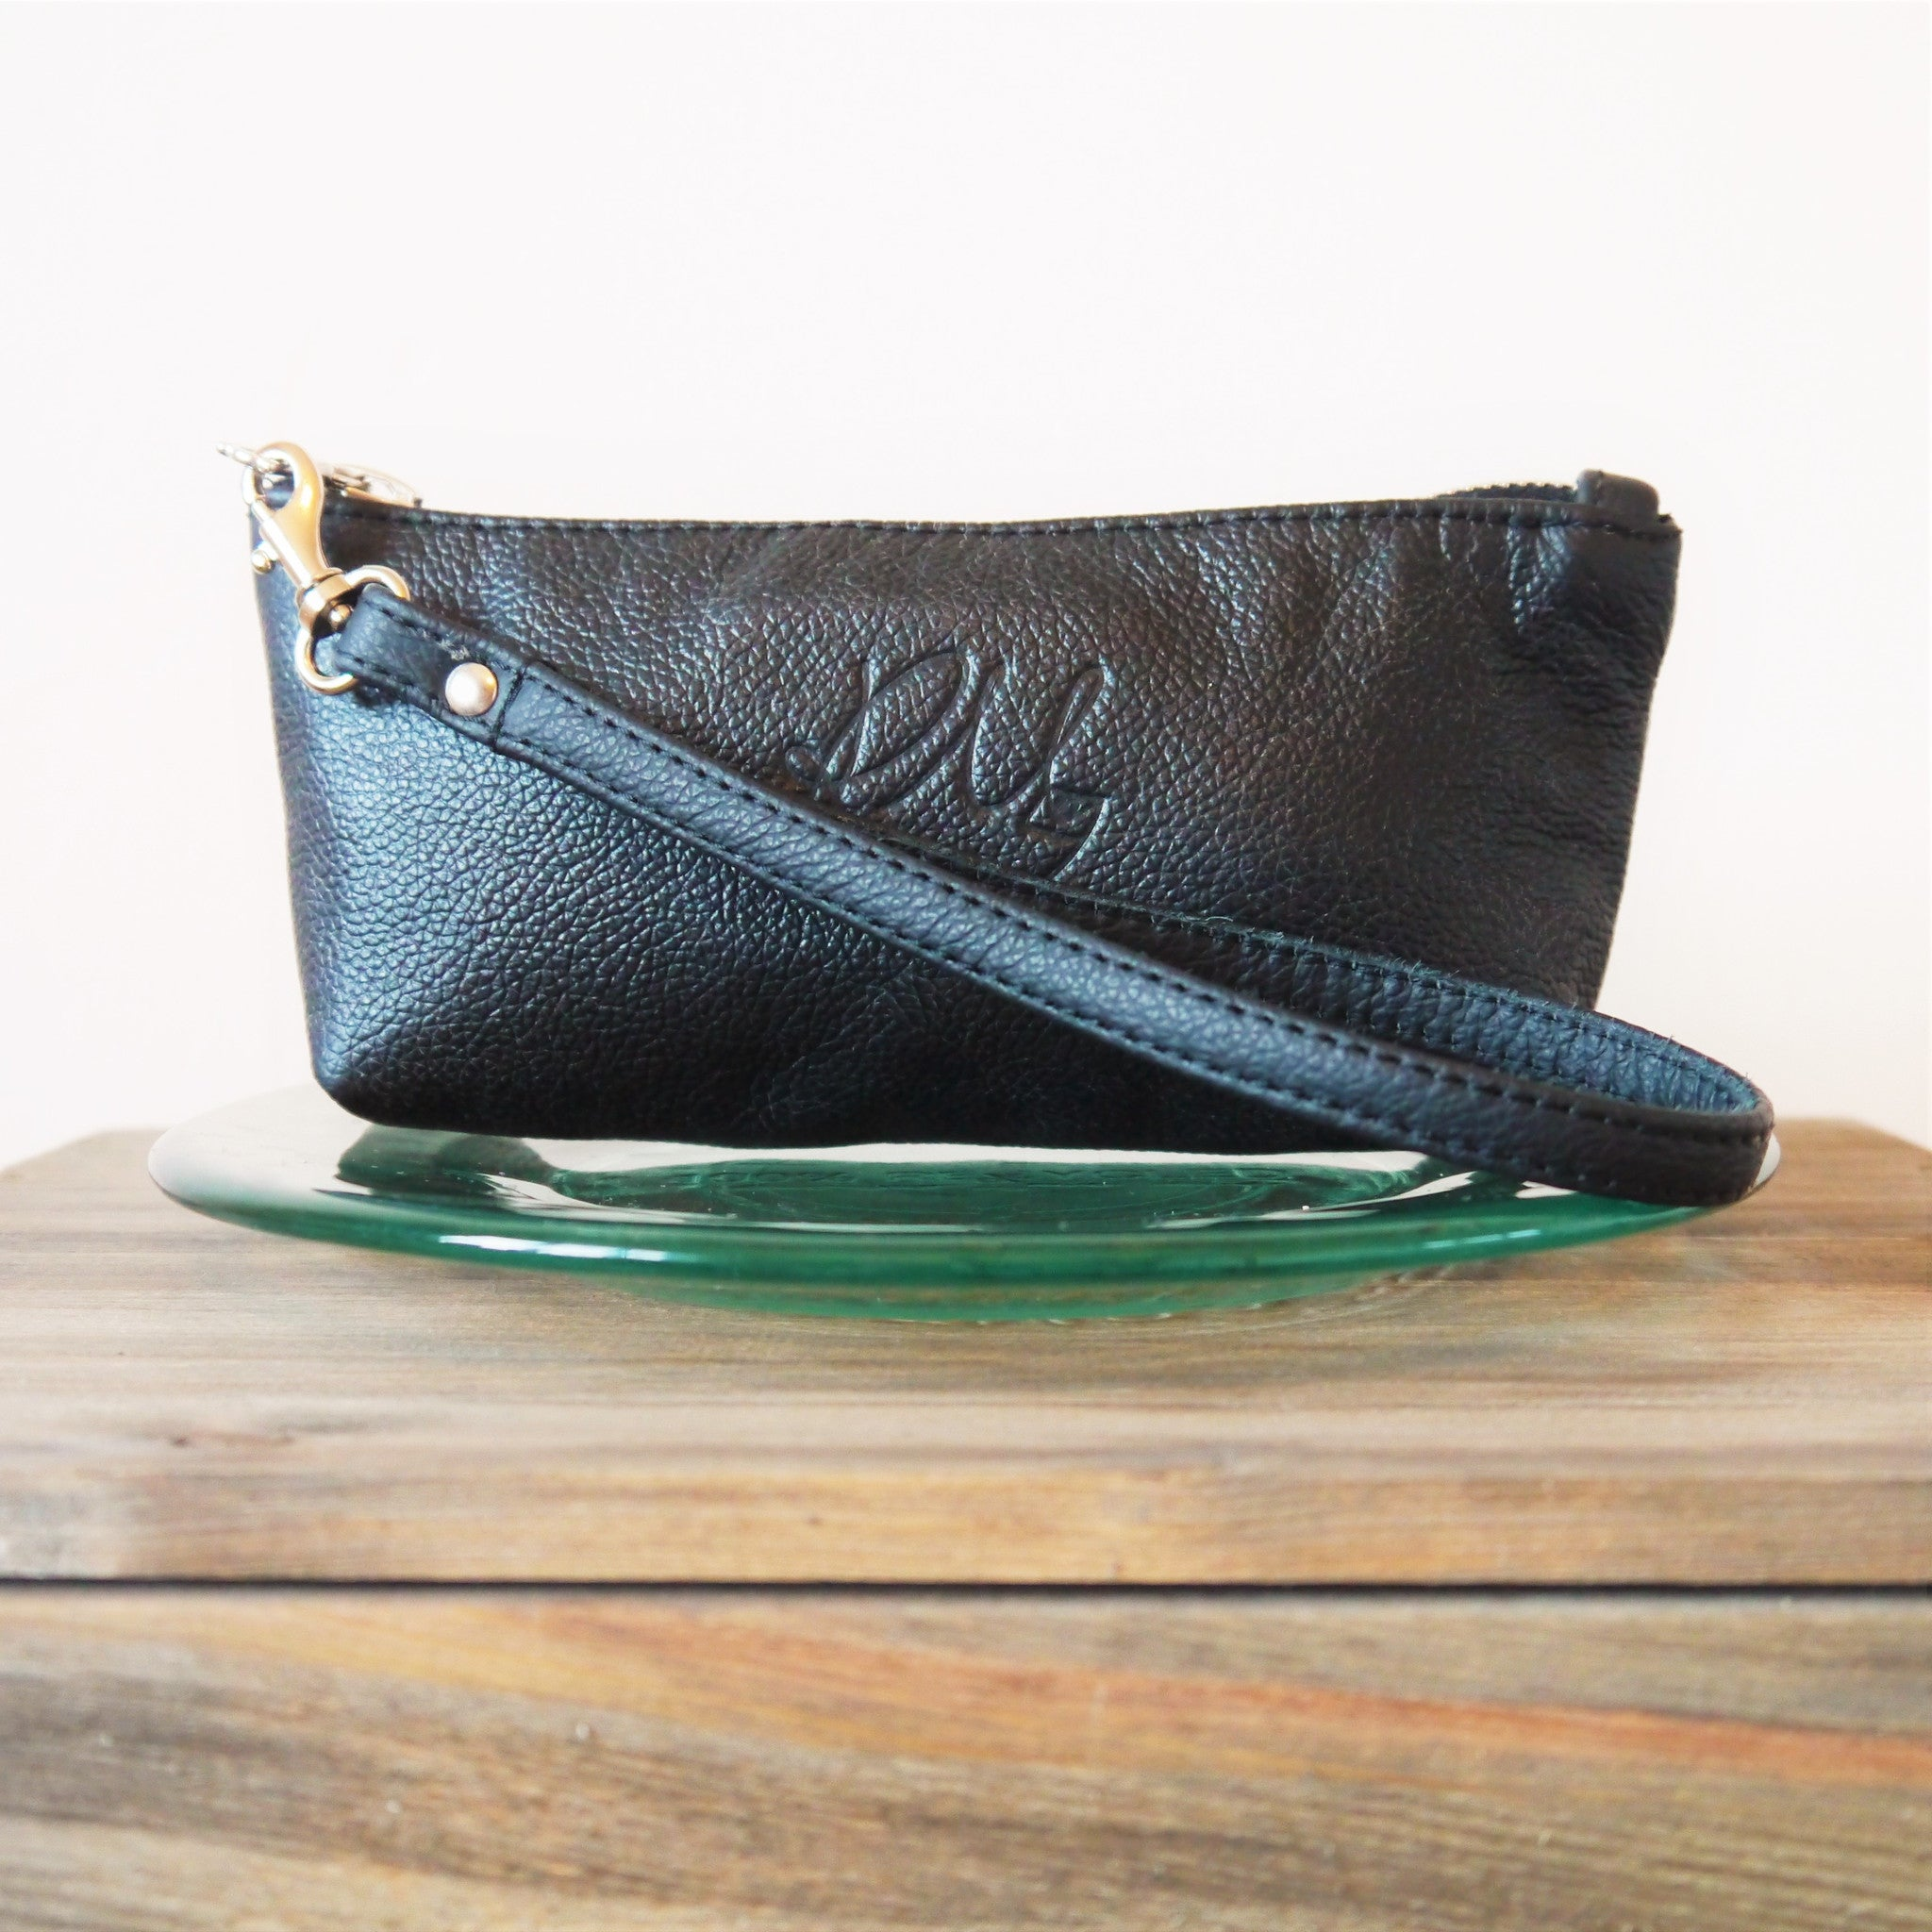 S/S16 Poppy small leather make up bag in - Black